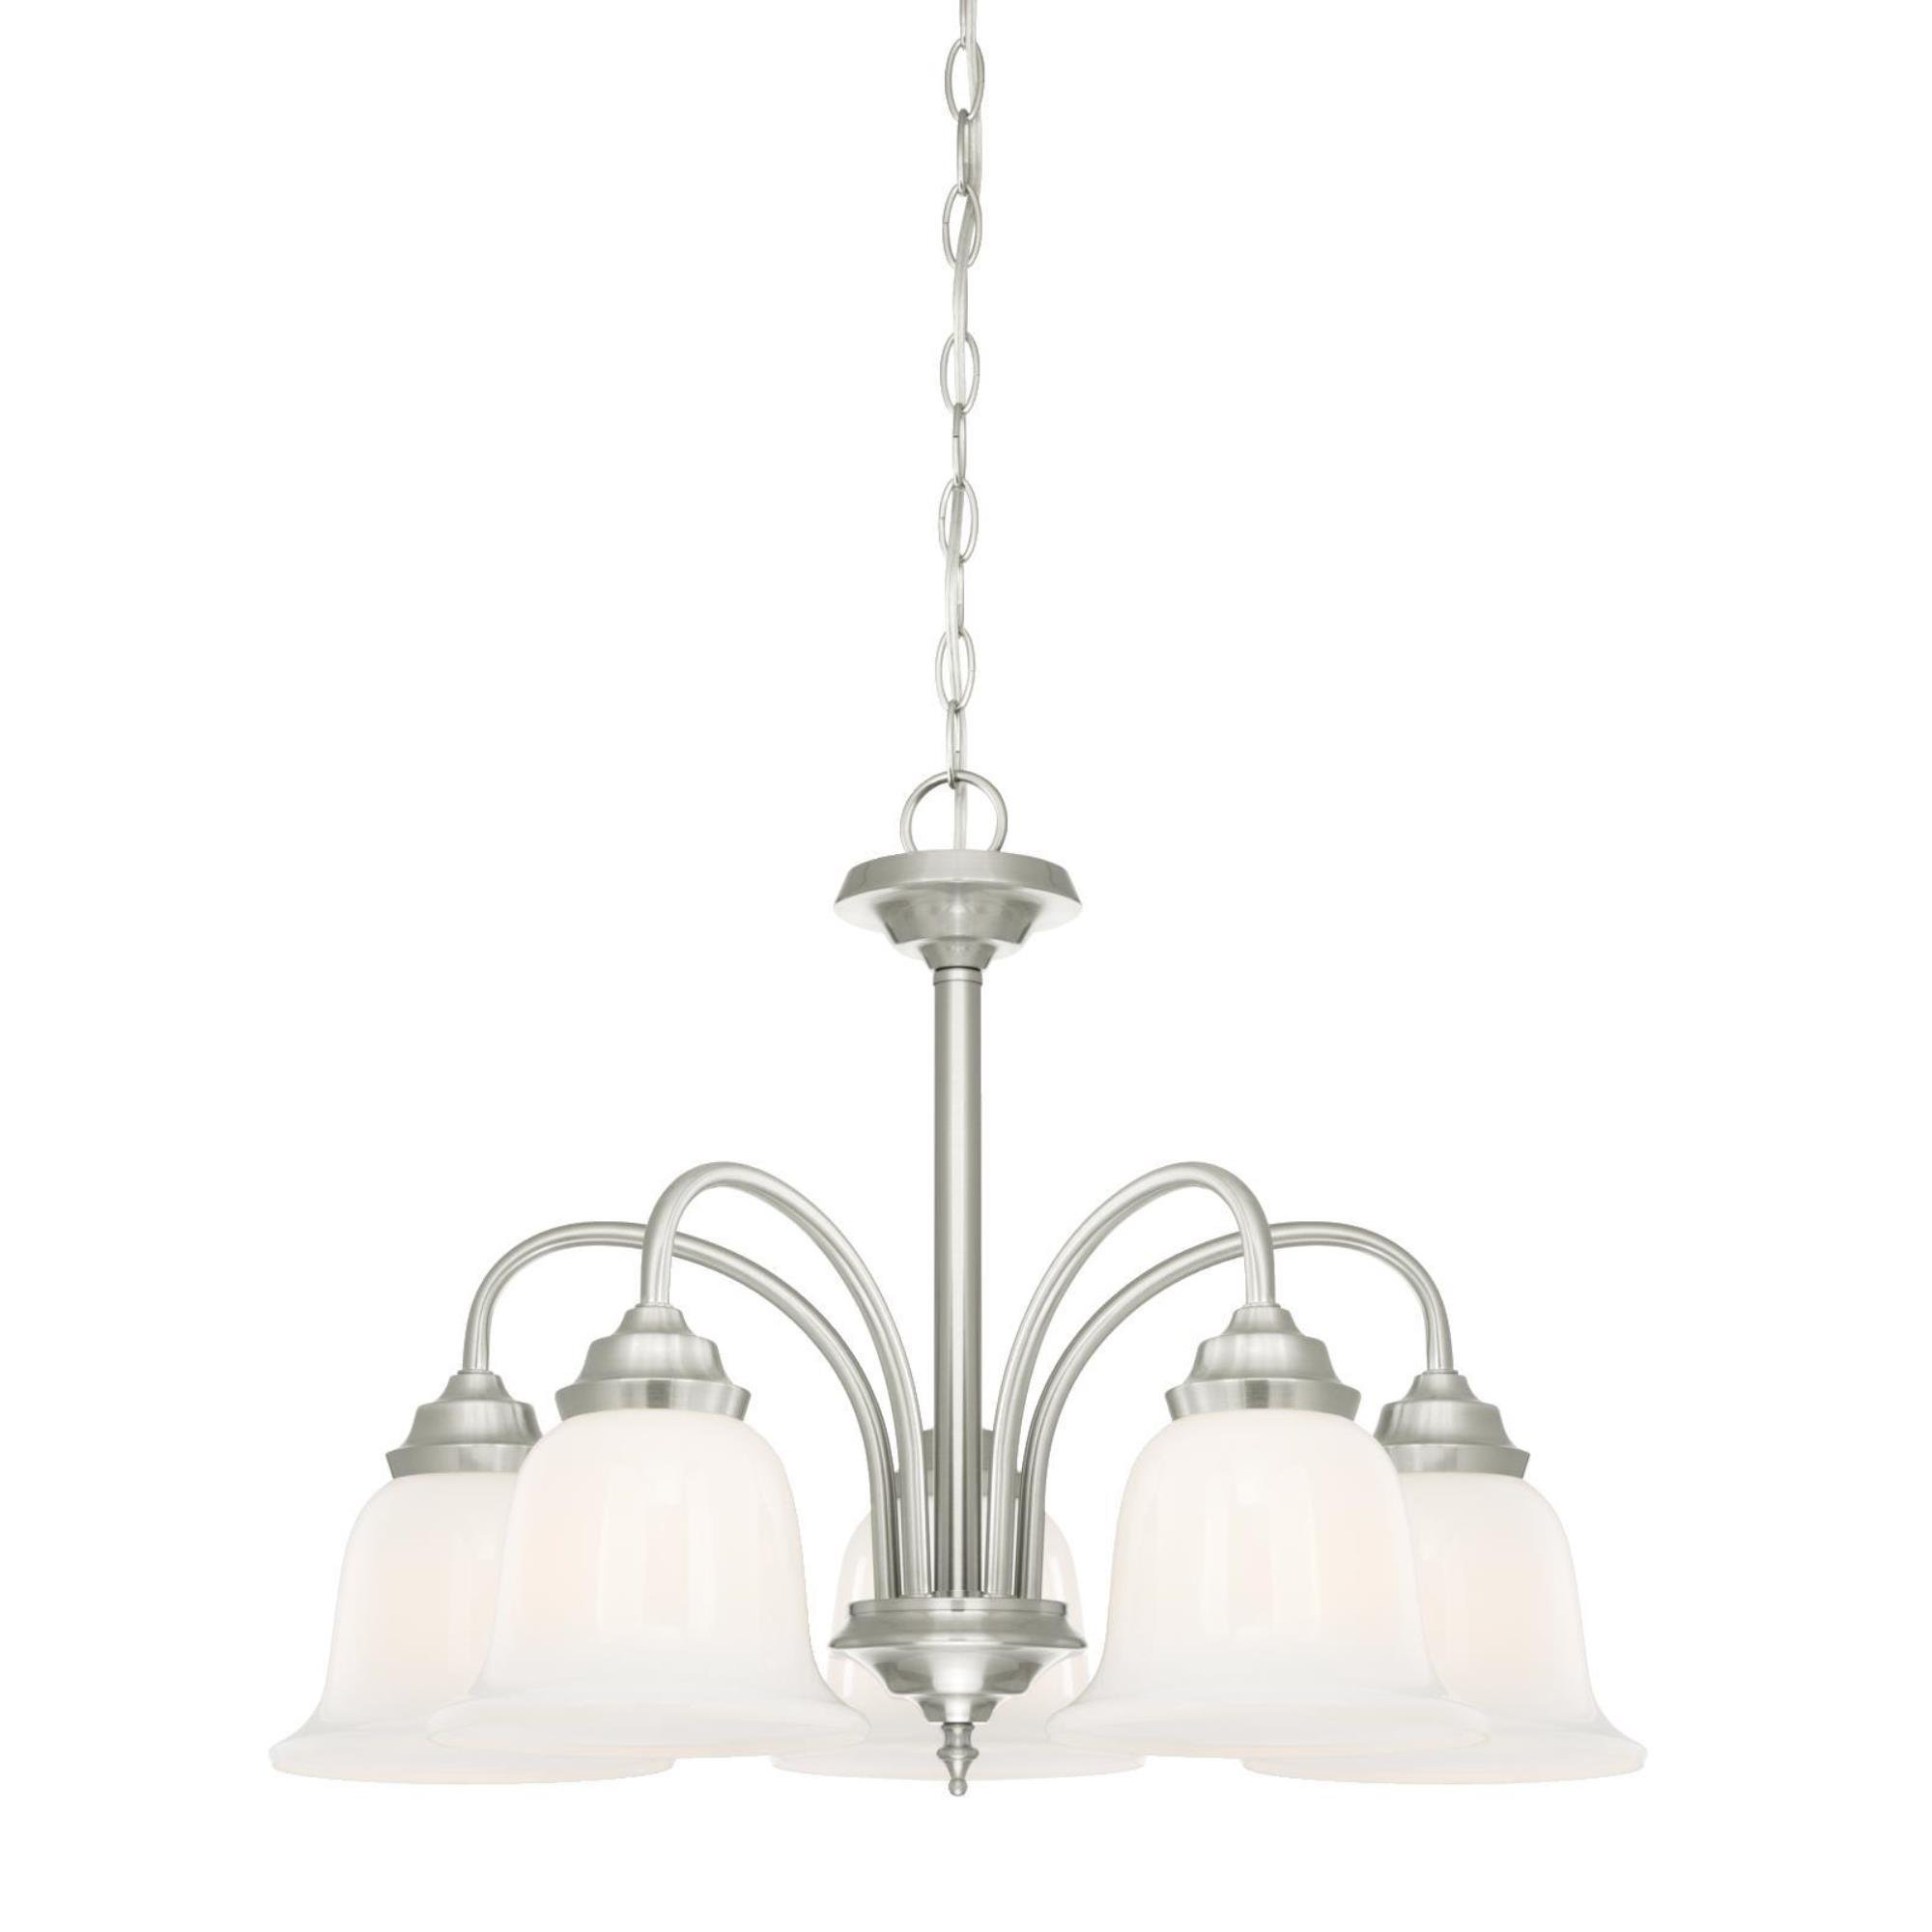 Westinghouse 6300100 Harwell Five-Light Indoor Chandelier, Brushed Nickel Finish with White Opal Glass Traditional Harwell Five-Light Indoor Chandelier, Brushed Nickel Finish with White Opal Glass